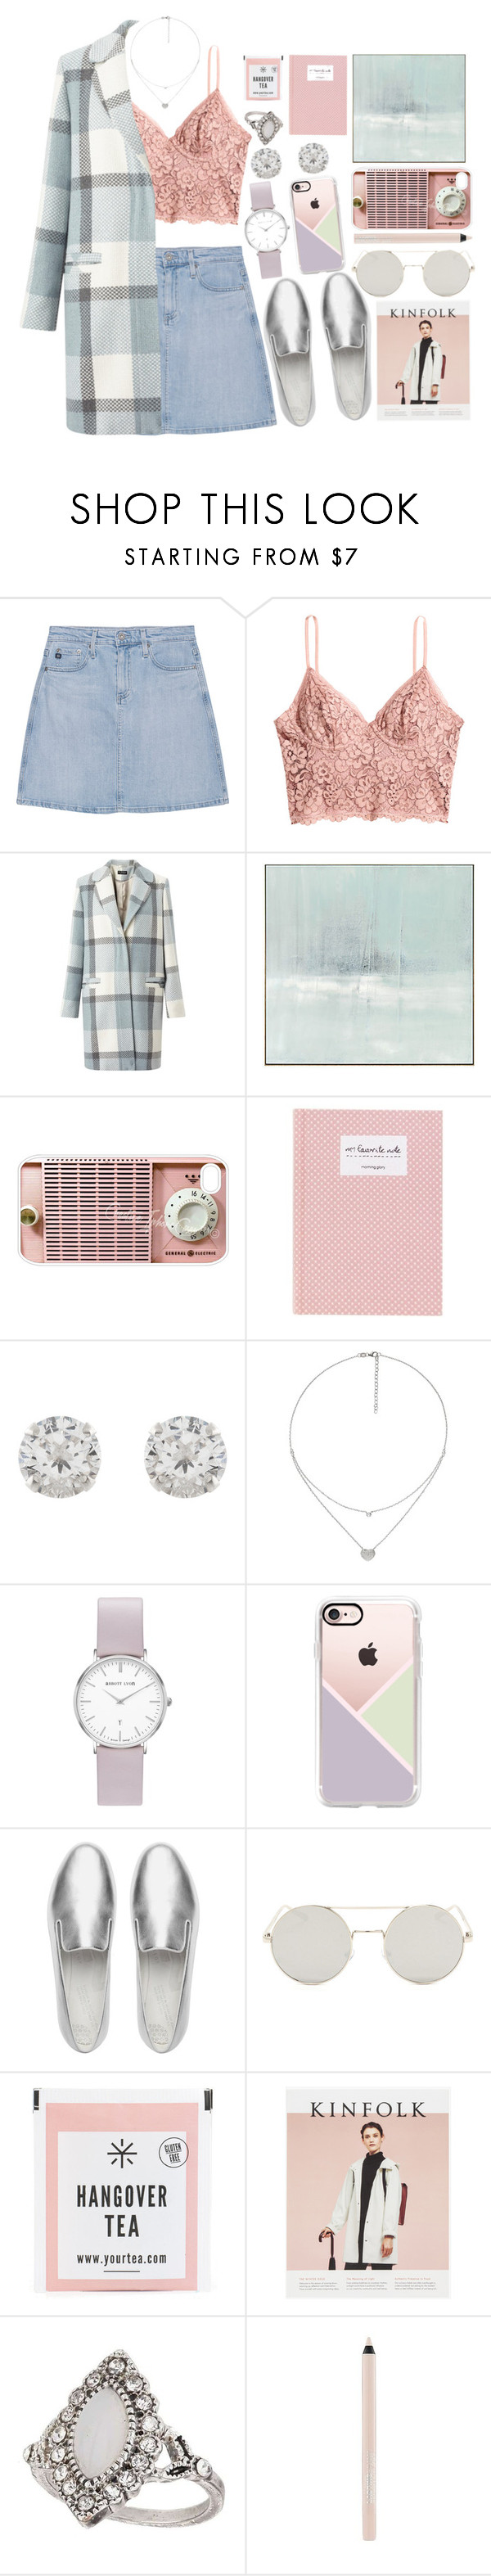 """""""Outfit (casual) #45"""" by tayscutts ❤ liked on Polyvore featuring AG Adriano Goldschmied, H&M, Miss Selfridge, Benson-Cobb Studios, Samsung, Accessorize, Folli Follie, Abbott Lyon, Casetify and FitFlop"""